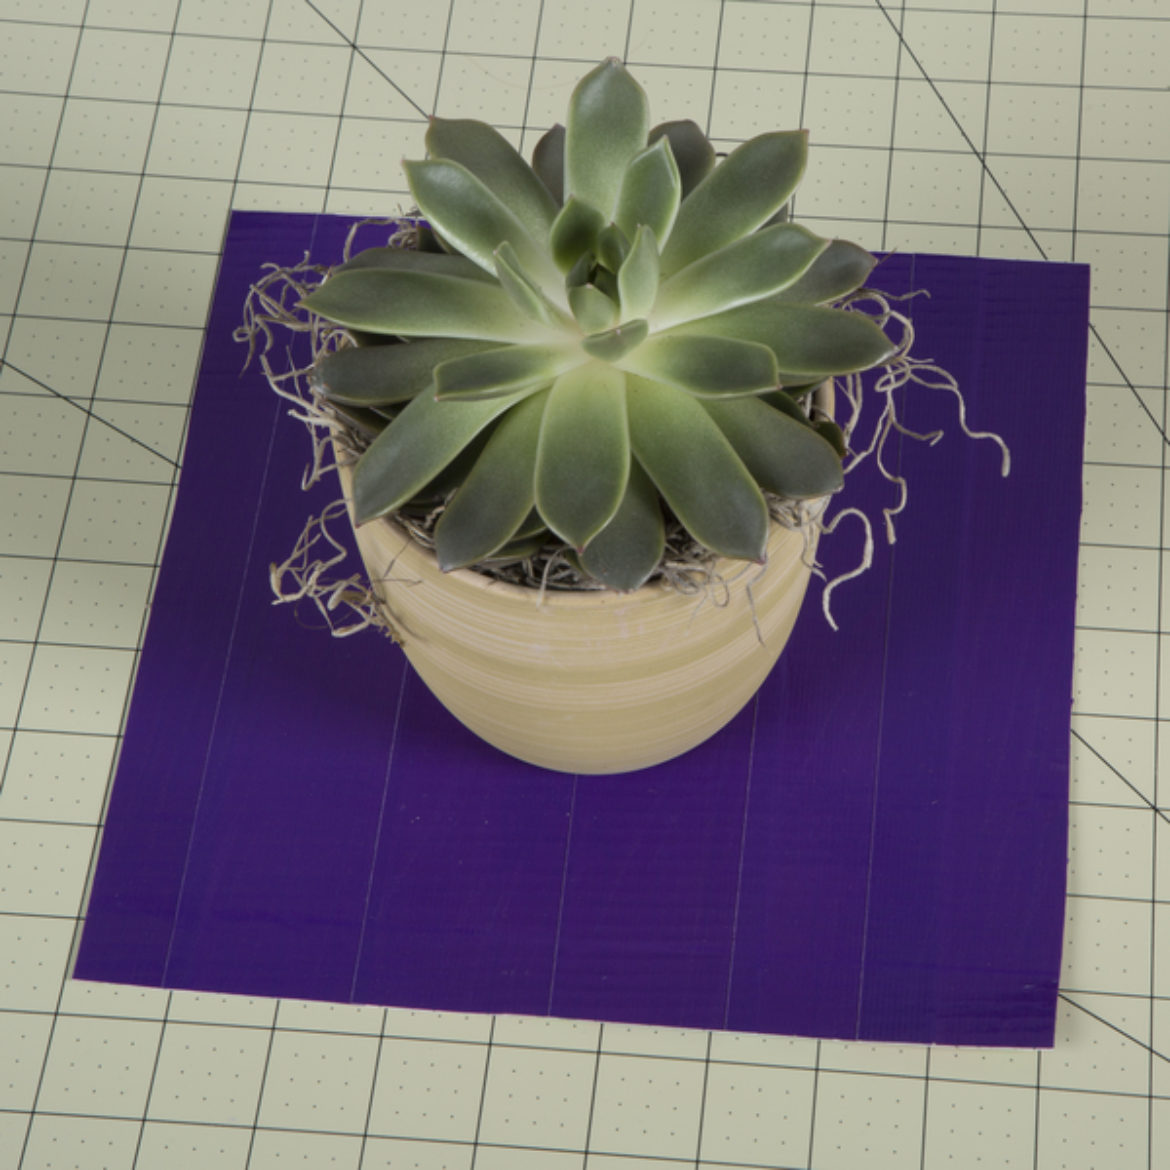 Cut a large square out of the Duck Tape sheet made in the previous steps, the potted plant is the placed in the center of the square to ensure coverage